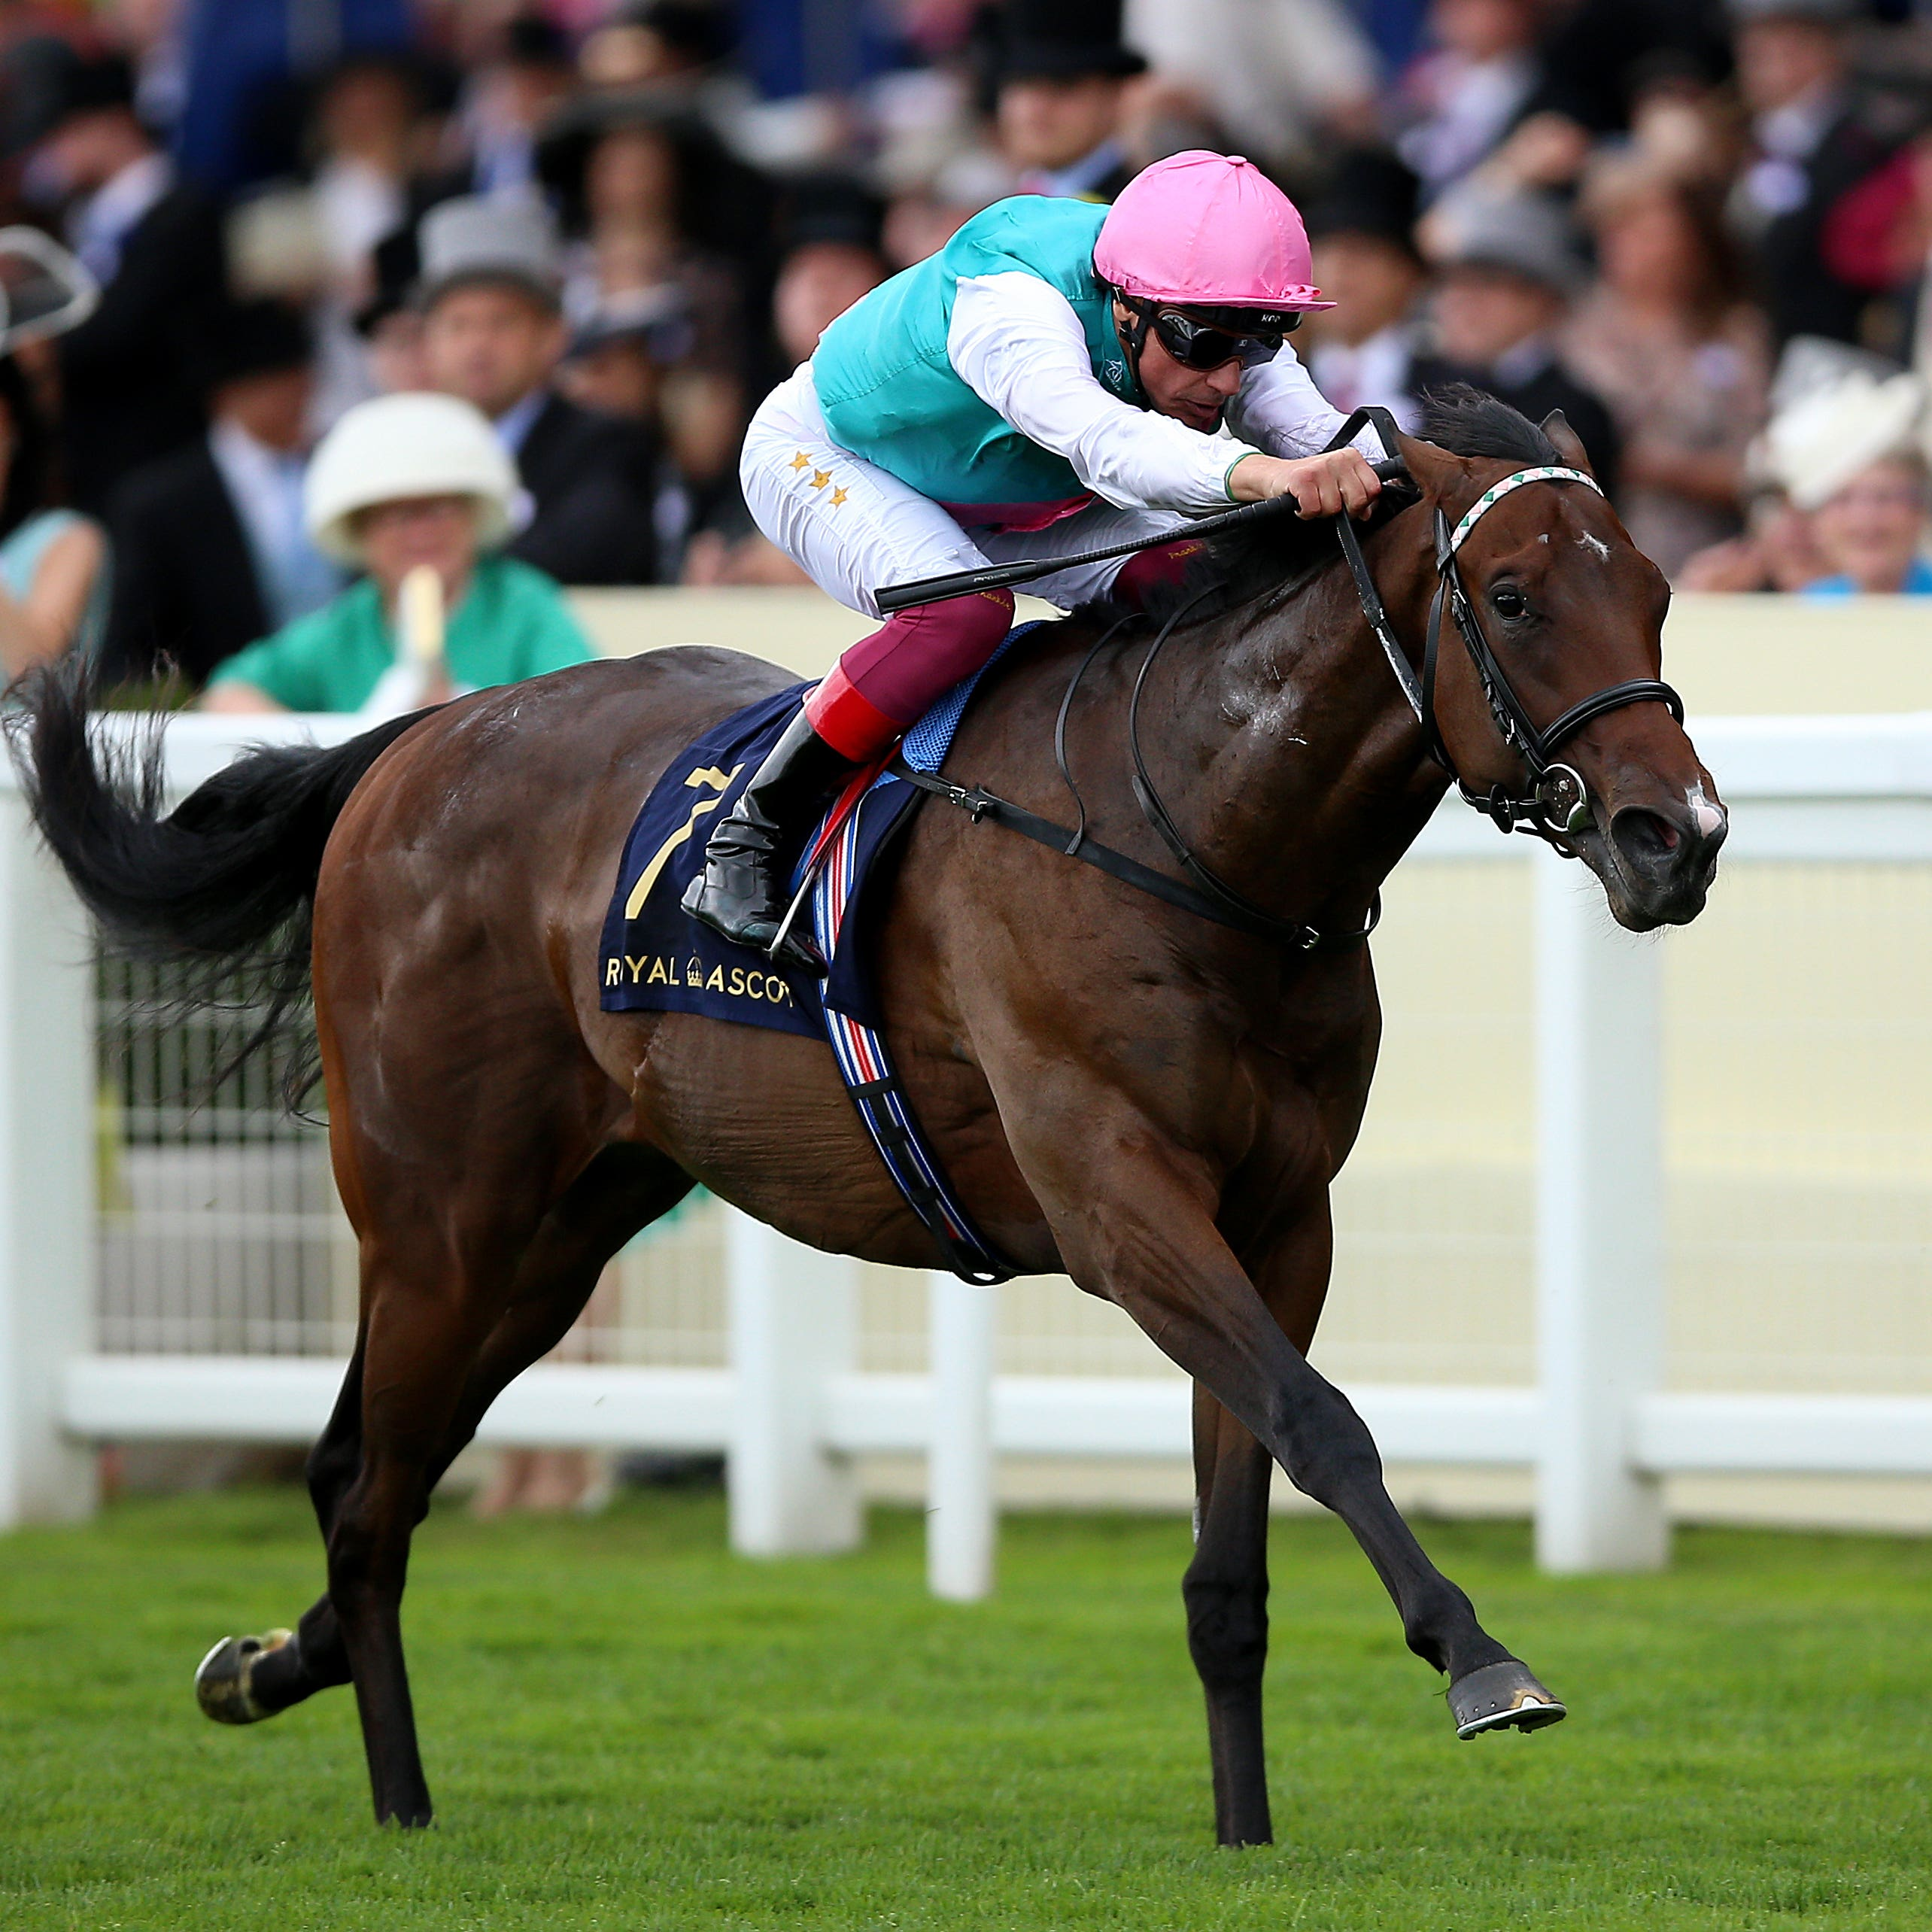 Calyx on his way to winning the Coventry Stakes at Royal Ascot